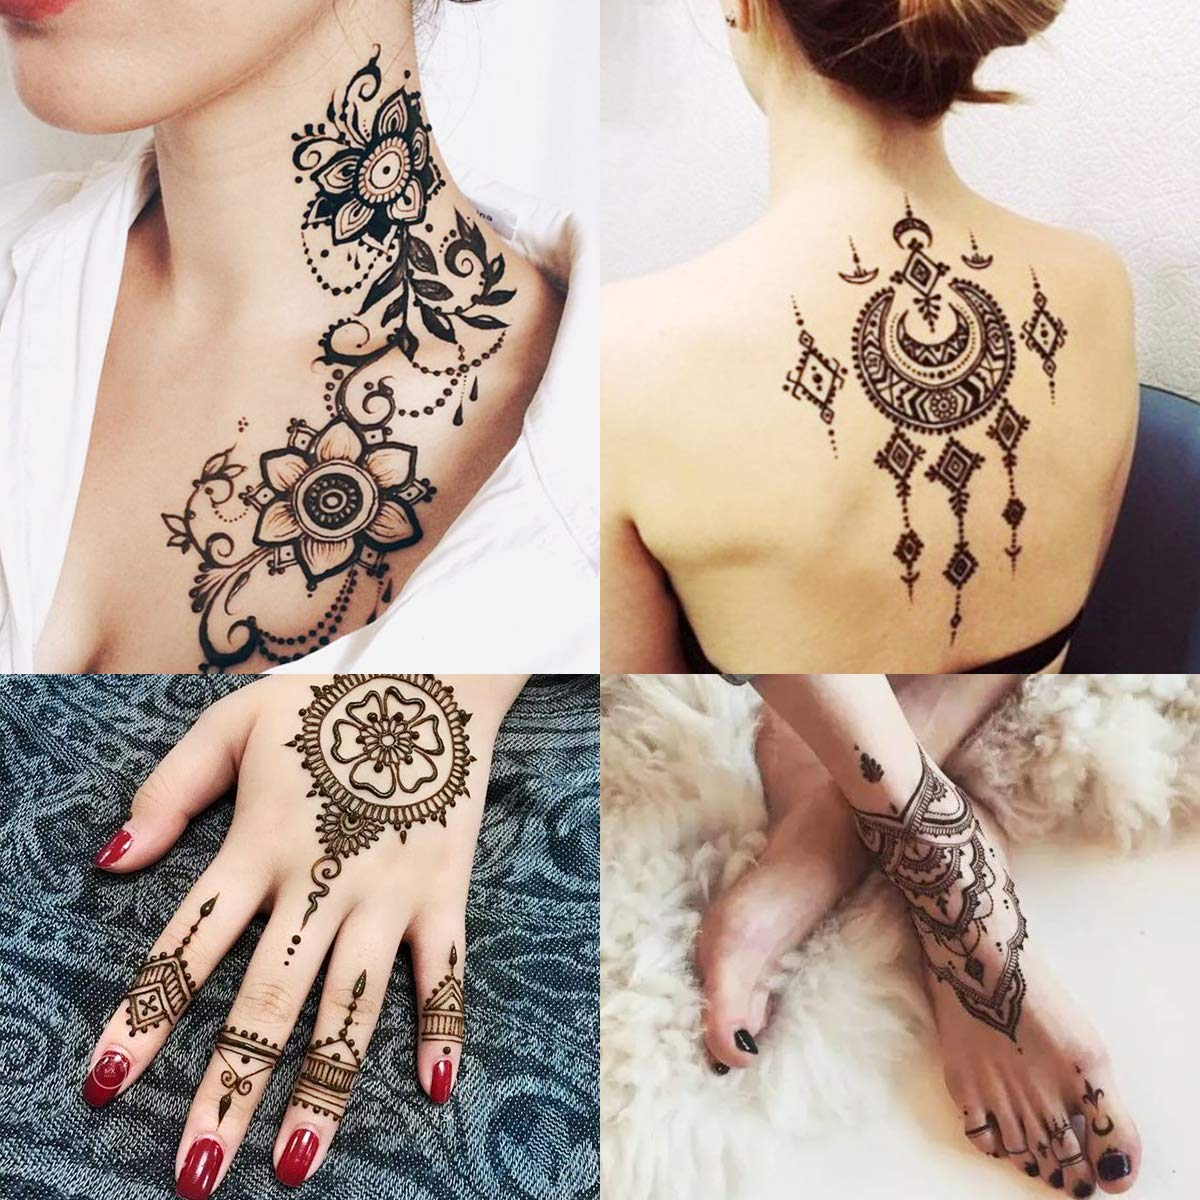 SKYMORE Temporary Tattoo Kit, Conical Temporary Art Tattoos Painting, 20 pcs Free Adhesive Stencils by SKYMORE (Image #2)